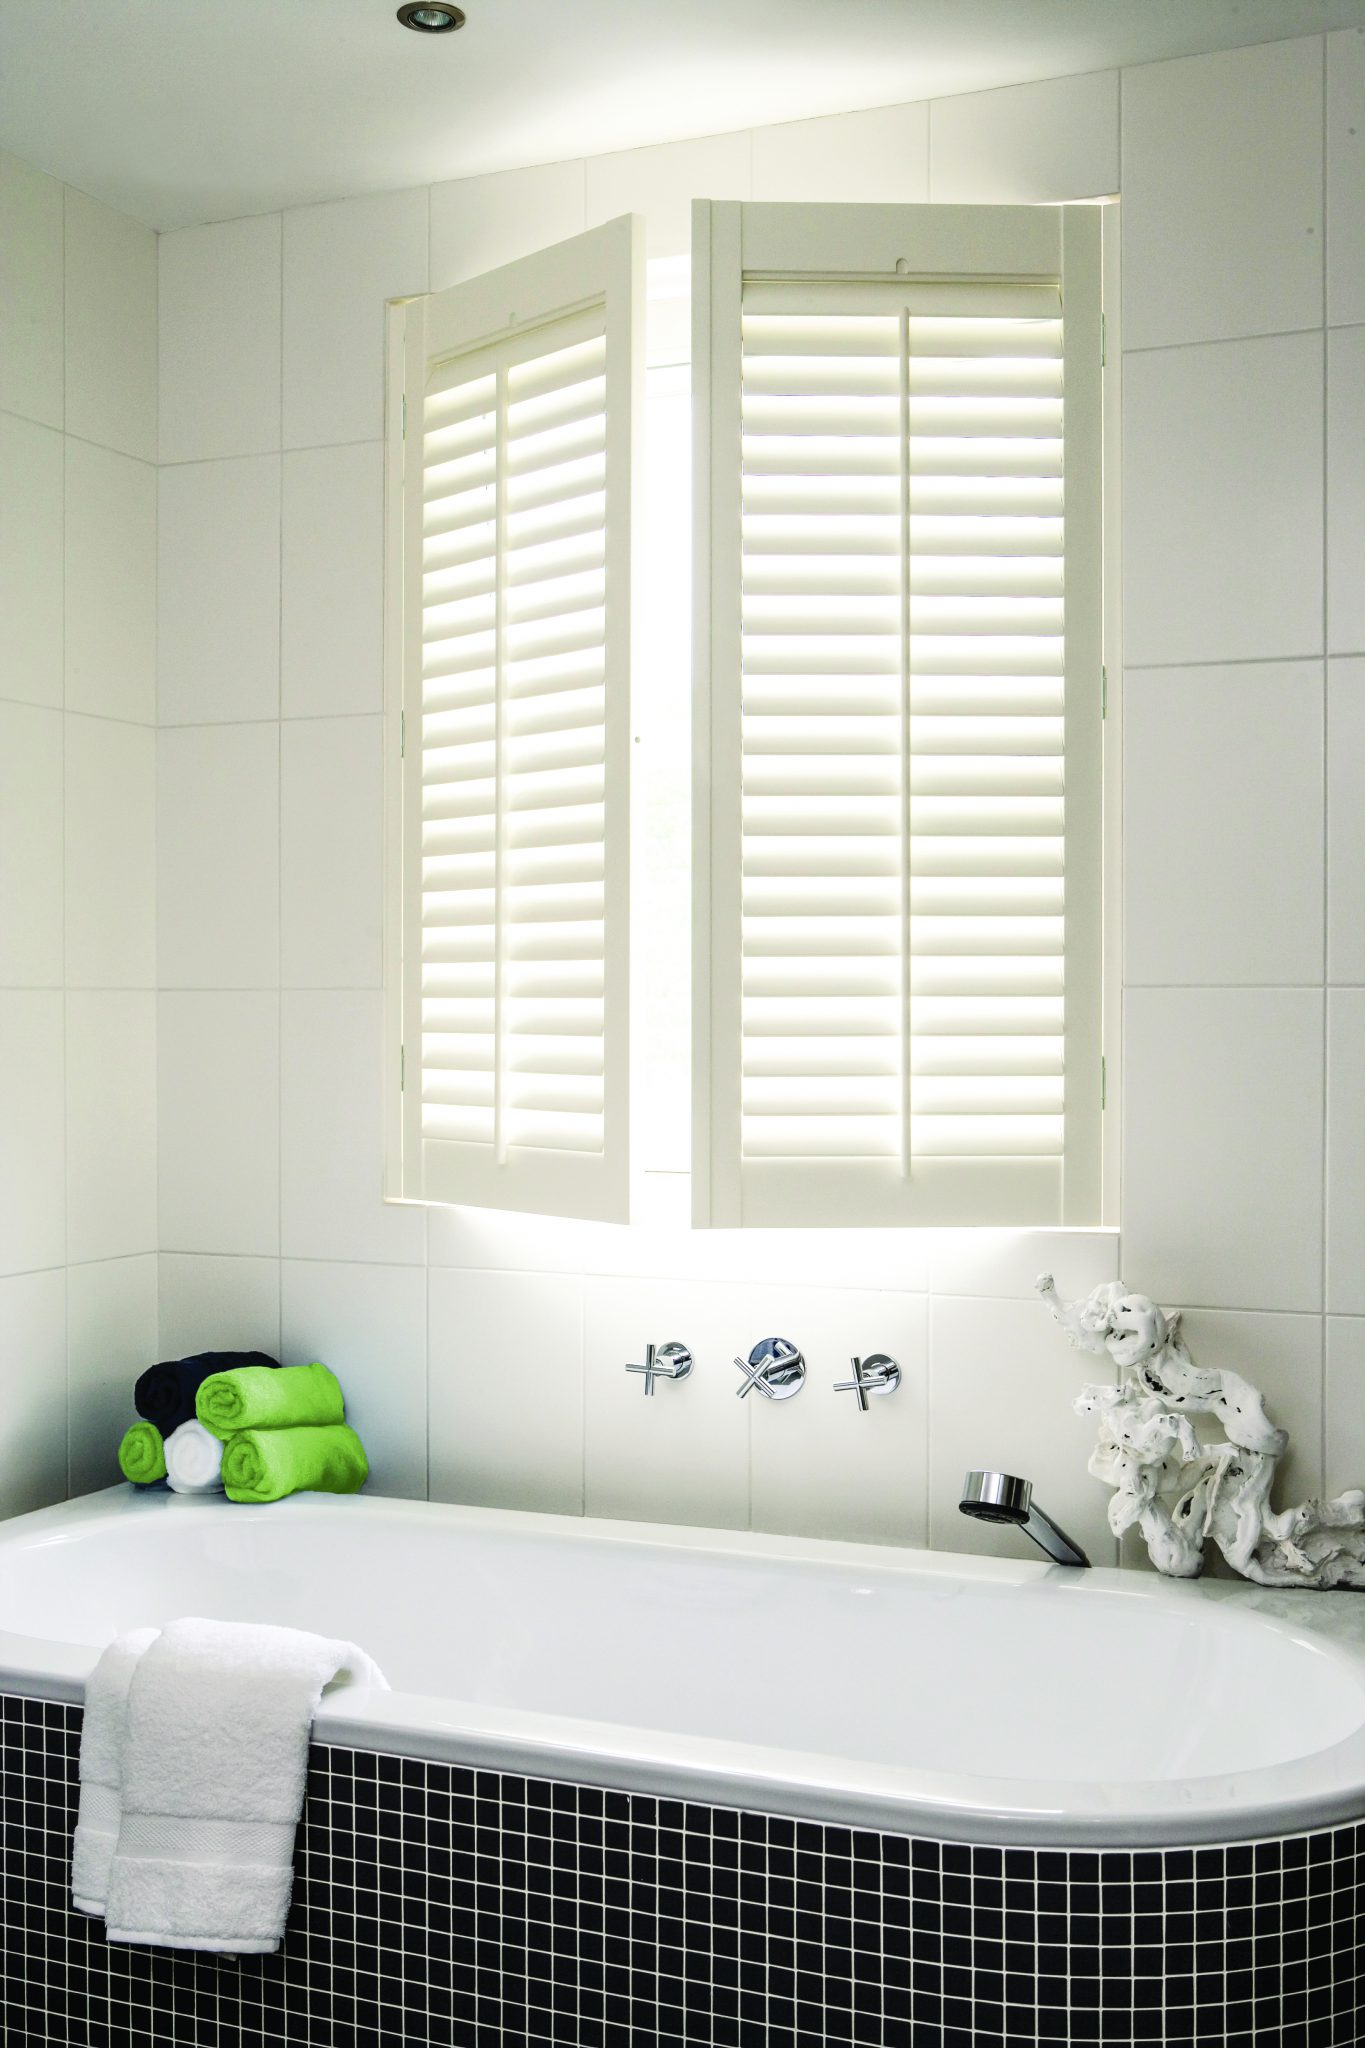 Shutter gallery for Bathrooms from SCRAFT